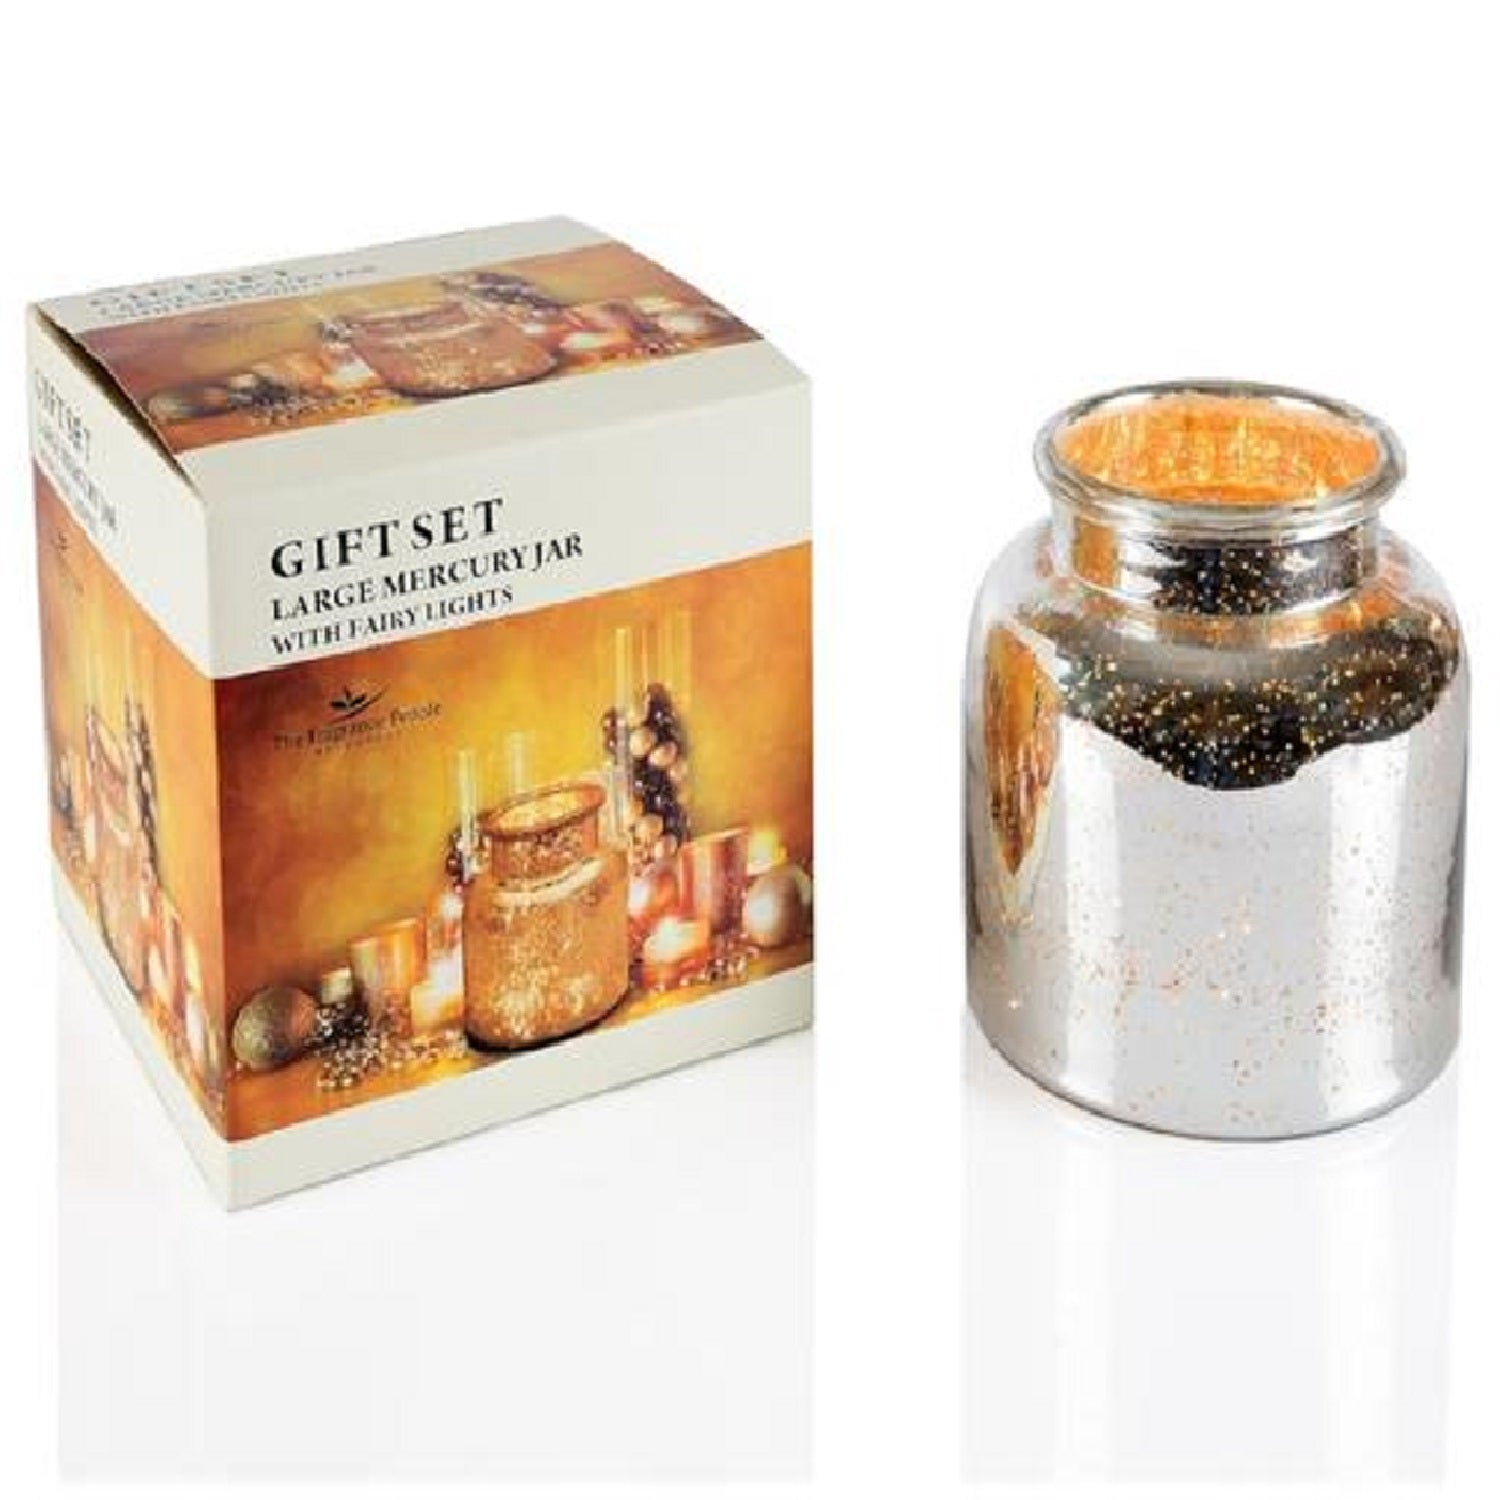 Mercury Jar with Fairy Lights - Gift Set - The Fragrance People